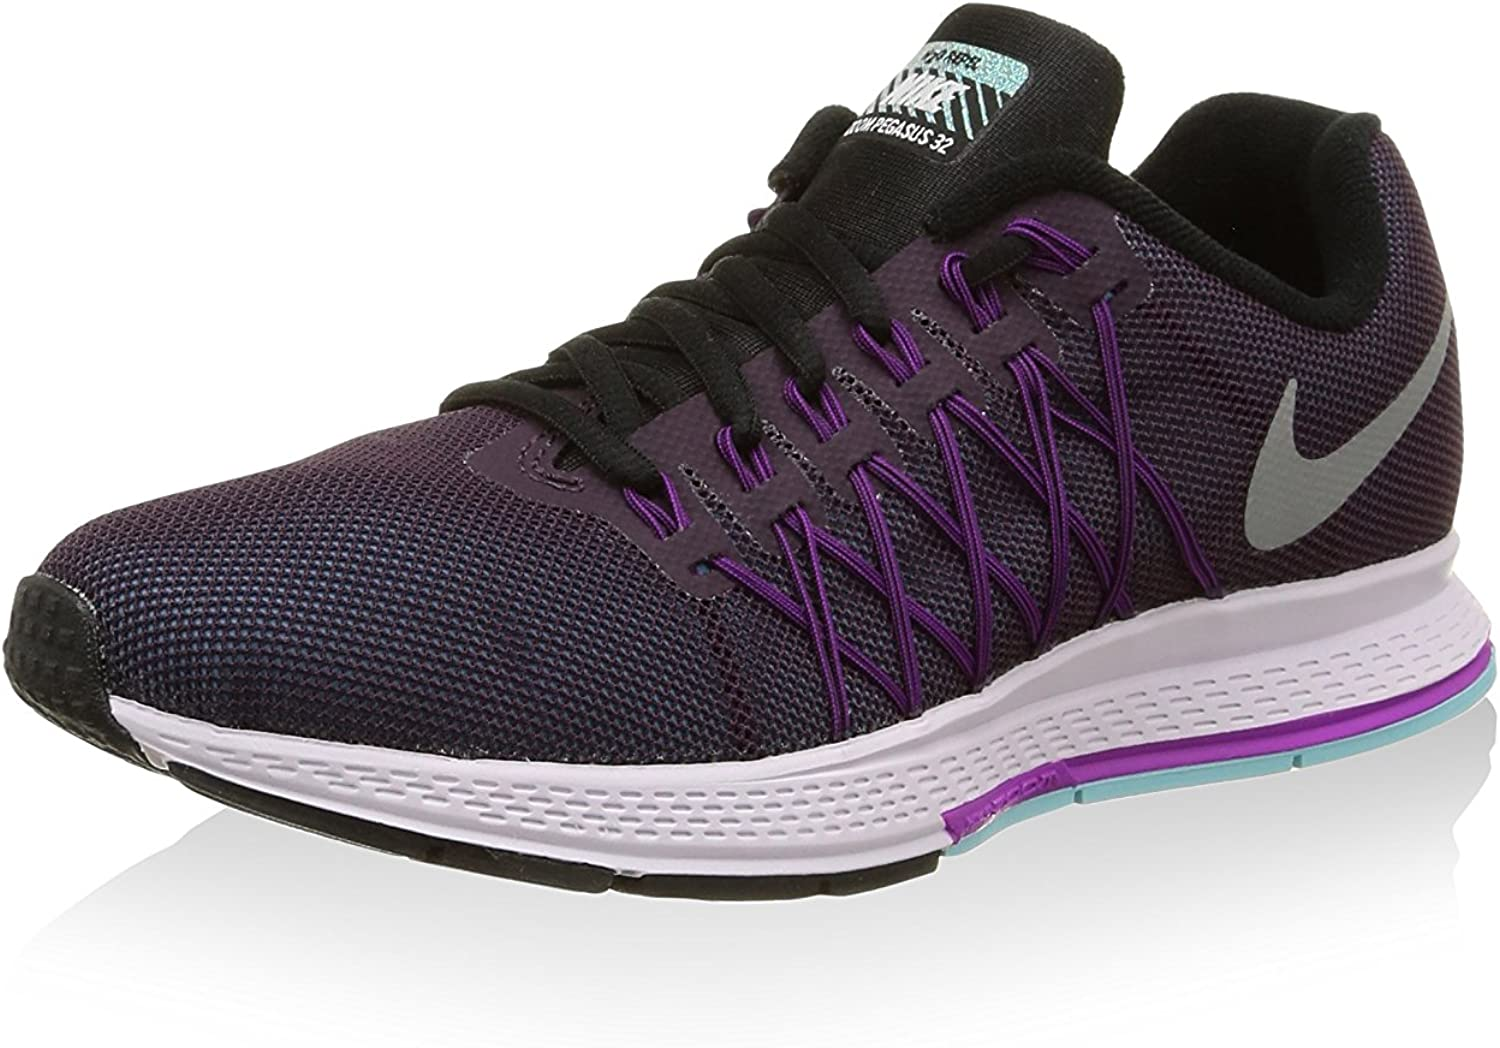 Sombra bar Recomendación  Nike Air Zoom Pegasus 32 Flash, Women's Sports Shoes: Amazon.co.uk: Shoes &  Bags